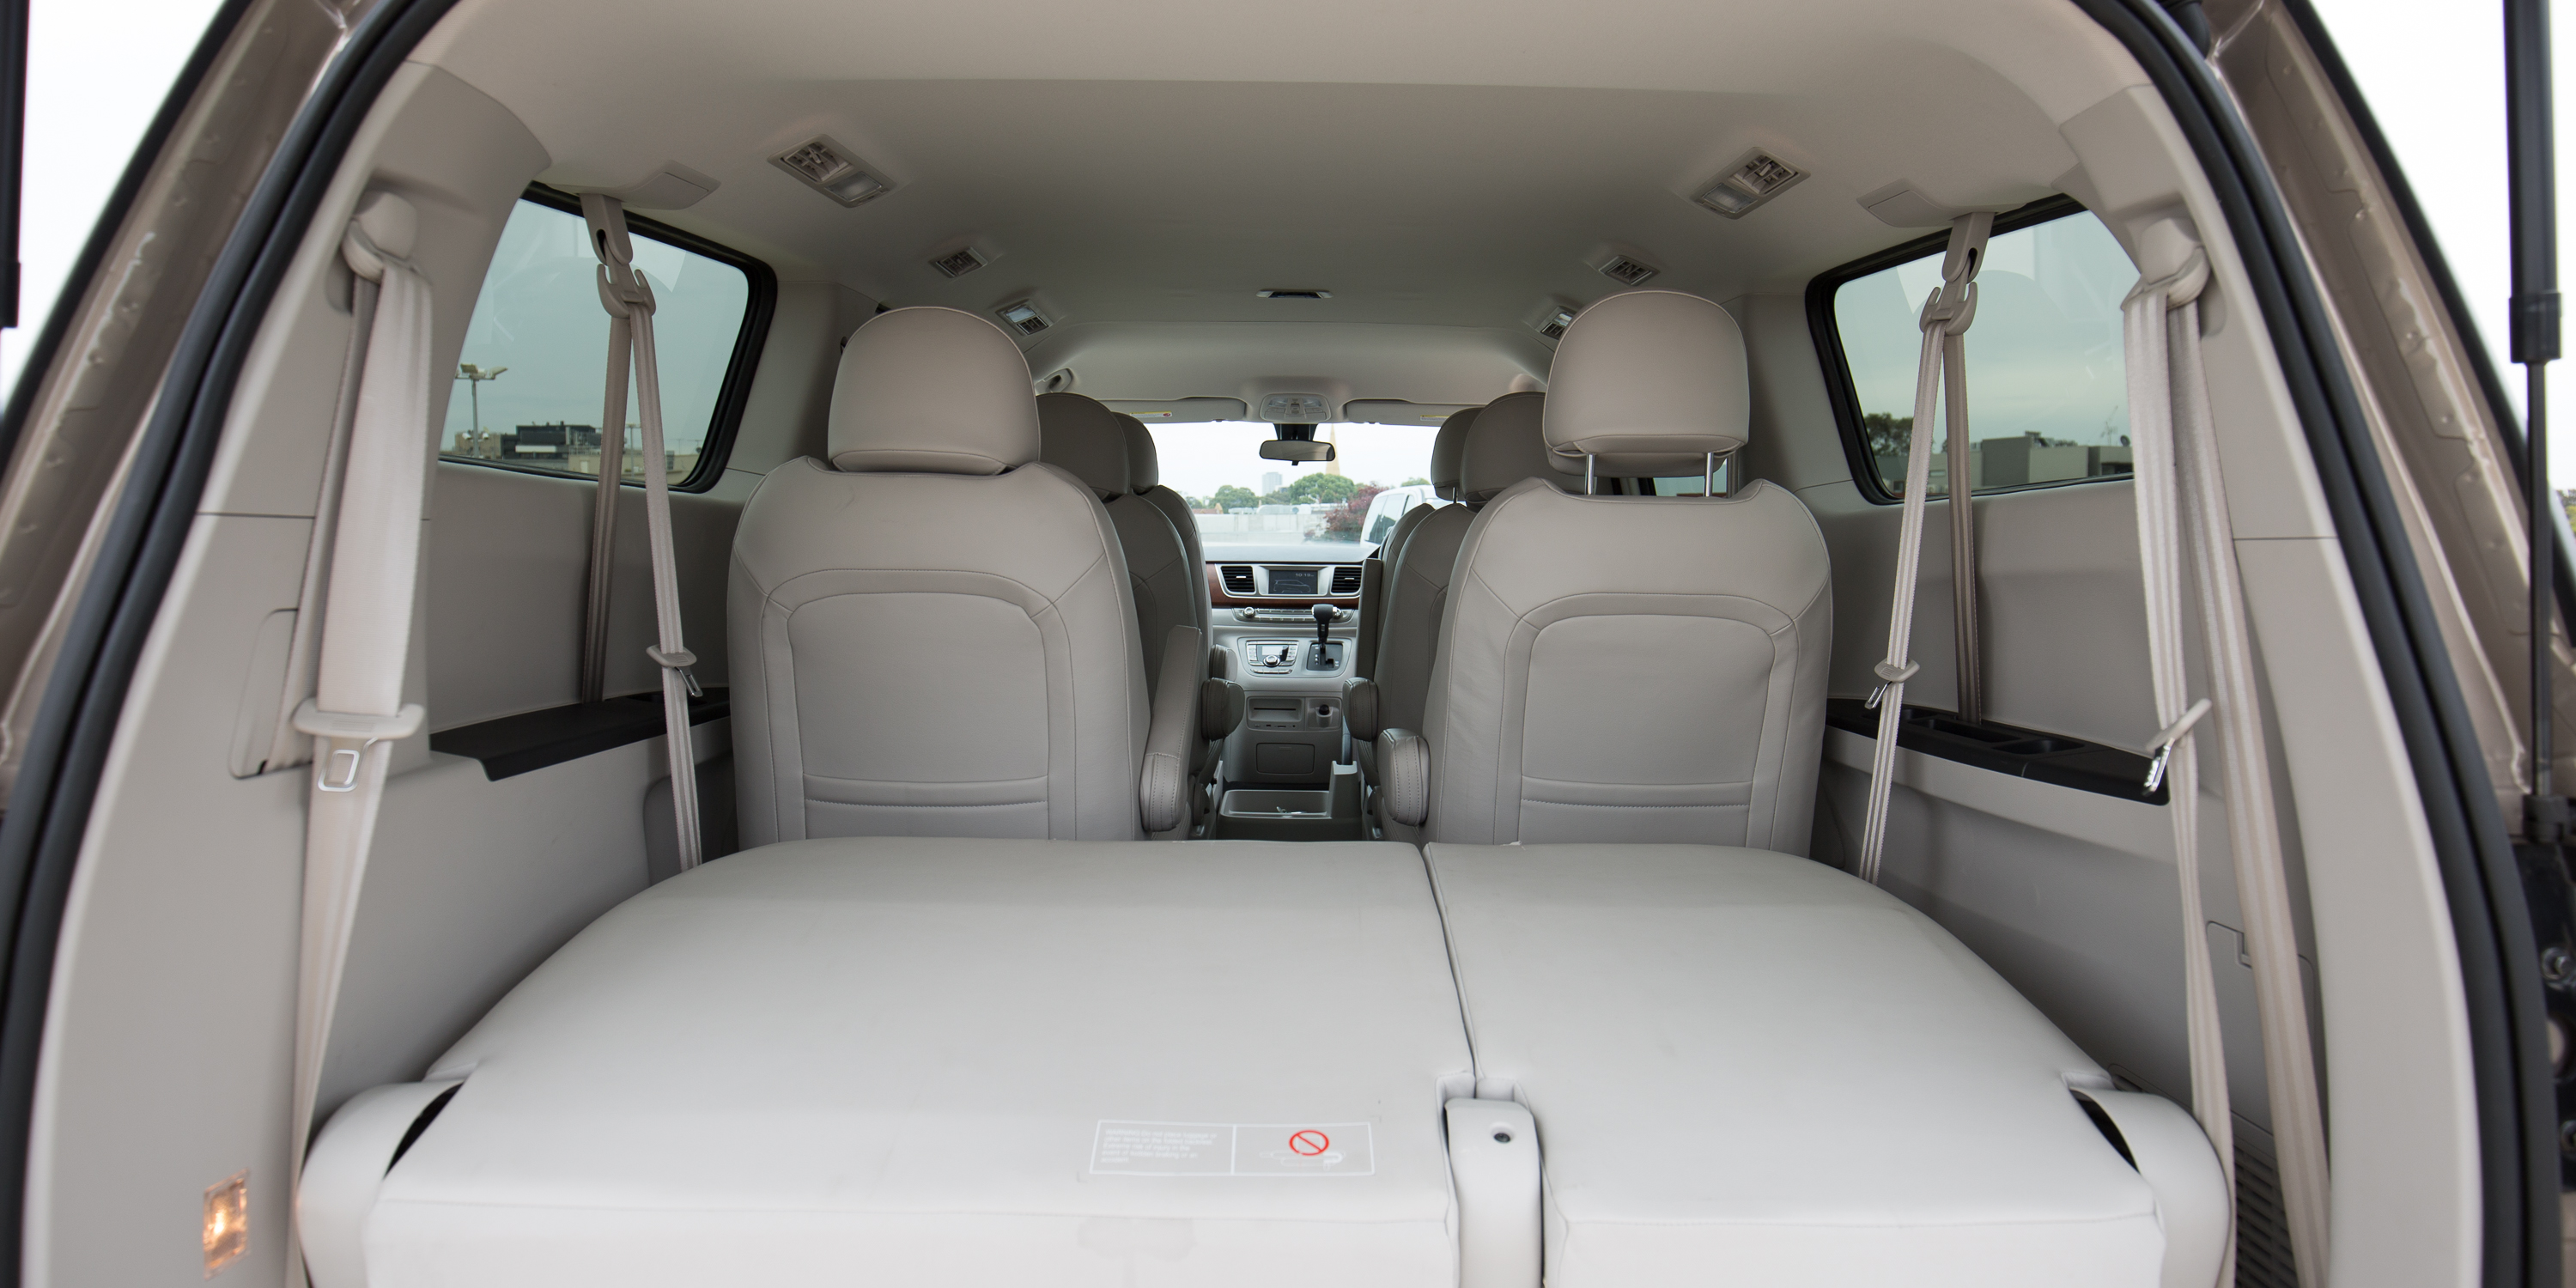 Best 7 Seater Suv >> 2016 LDV G10 Nine-Seater Review | CarAdvice